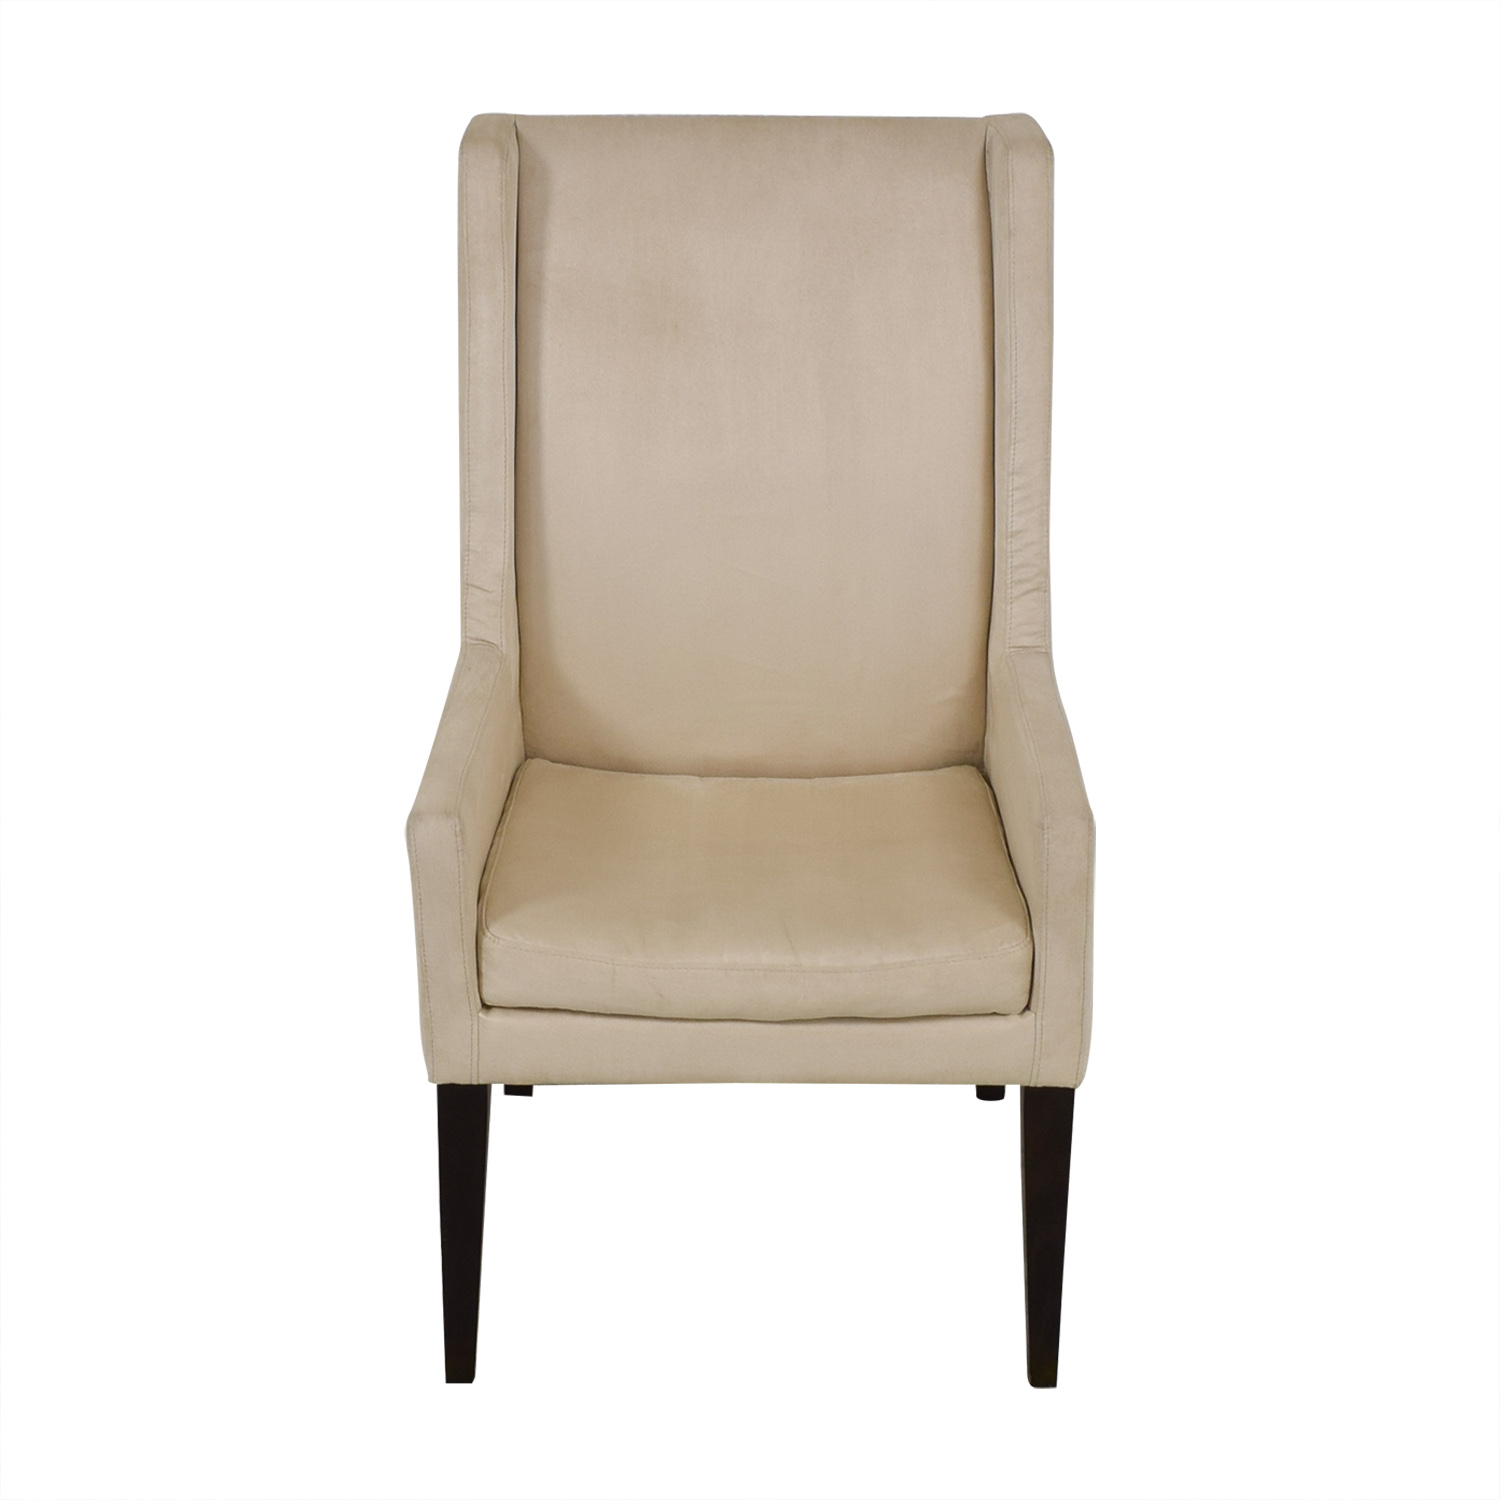 West Elm West Elm Modern Wing Chair price